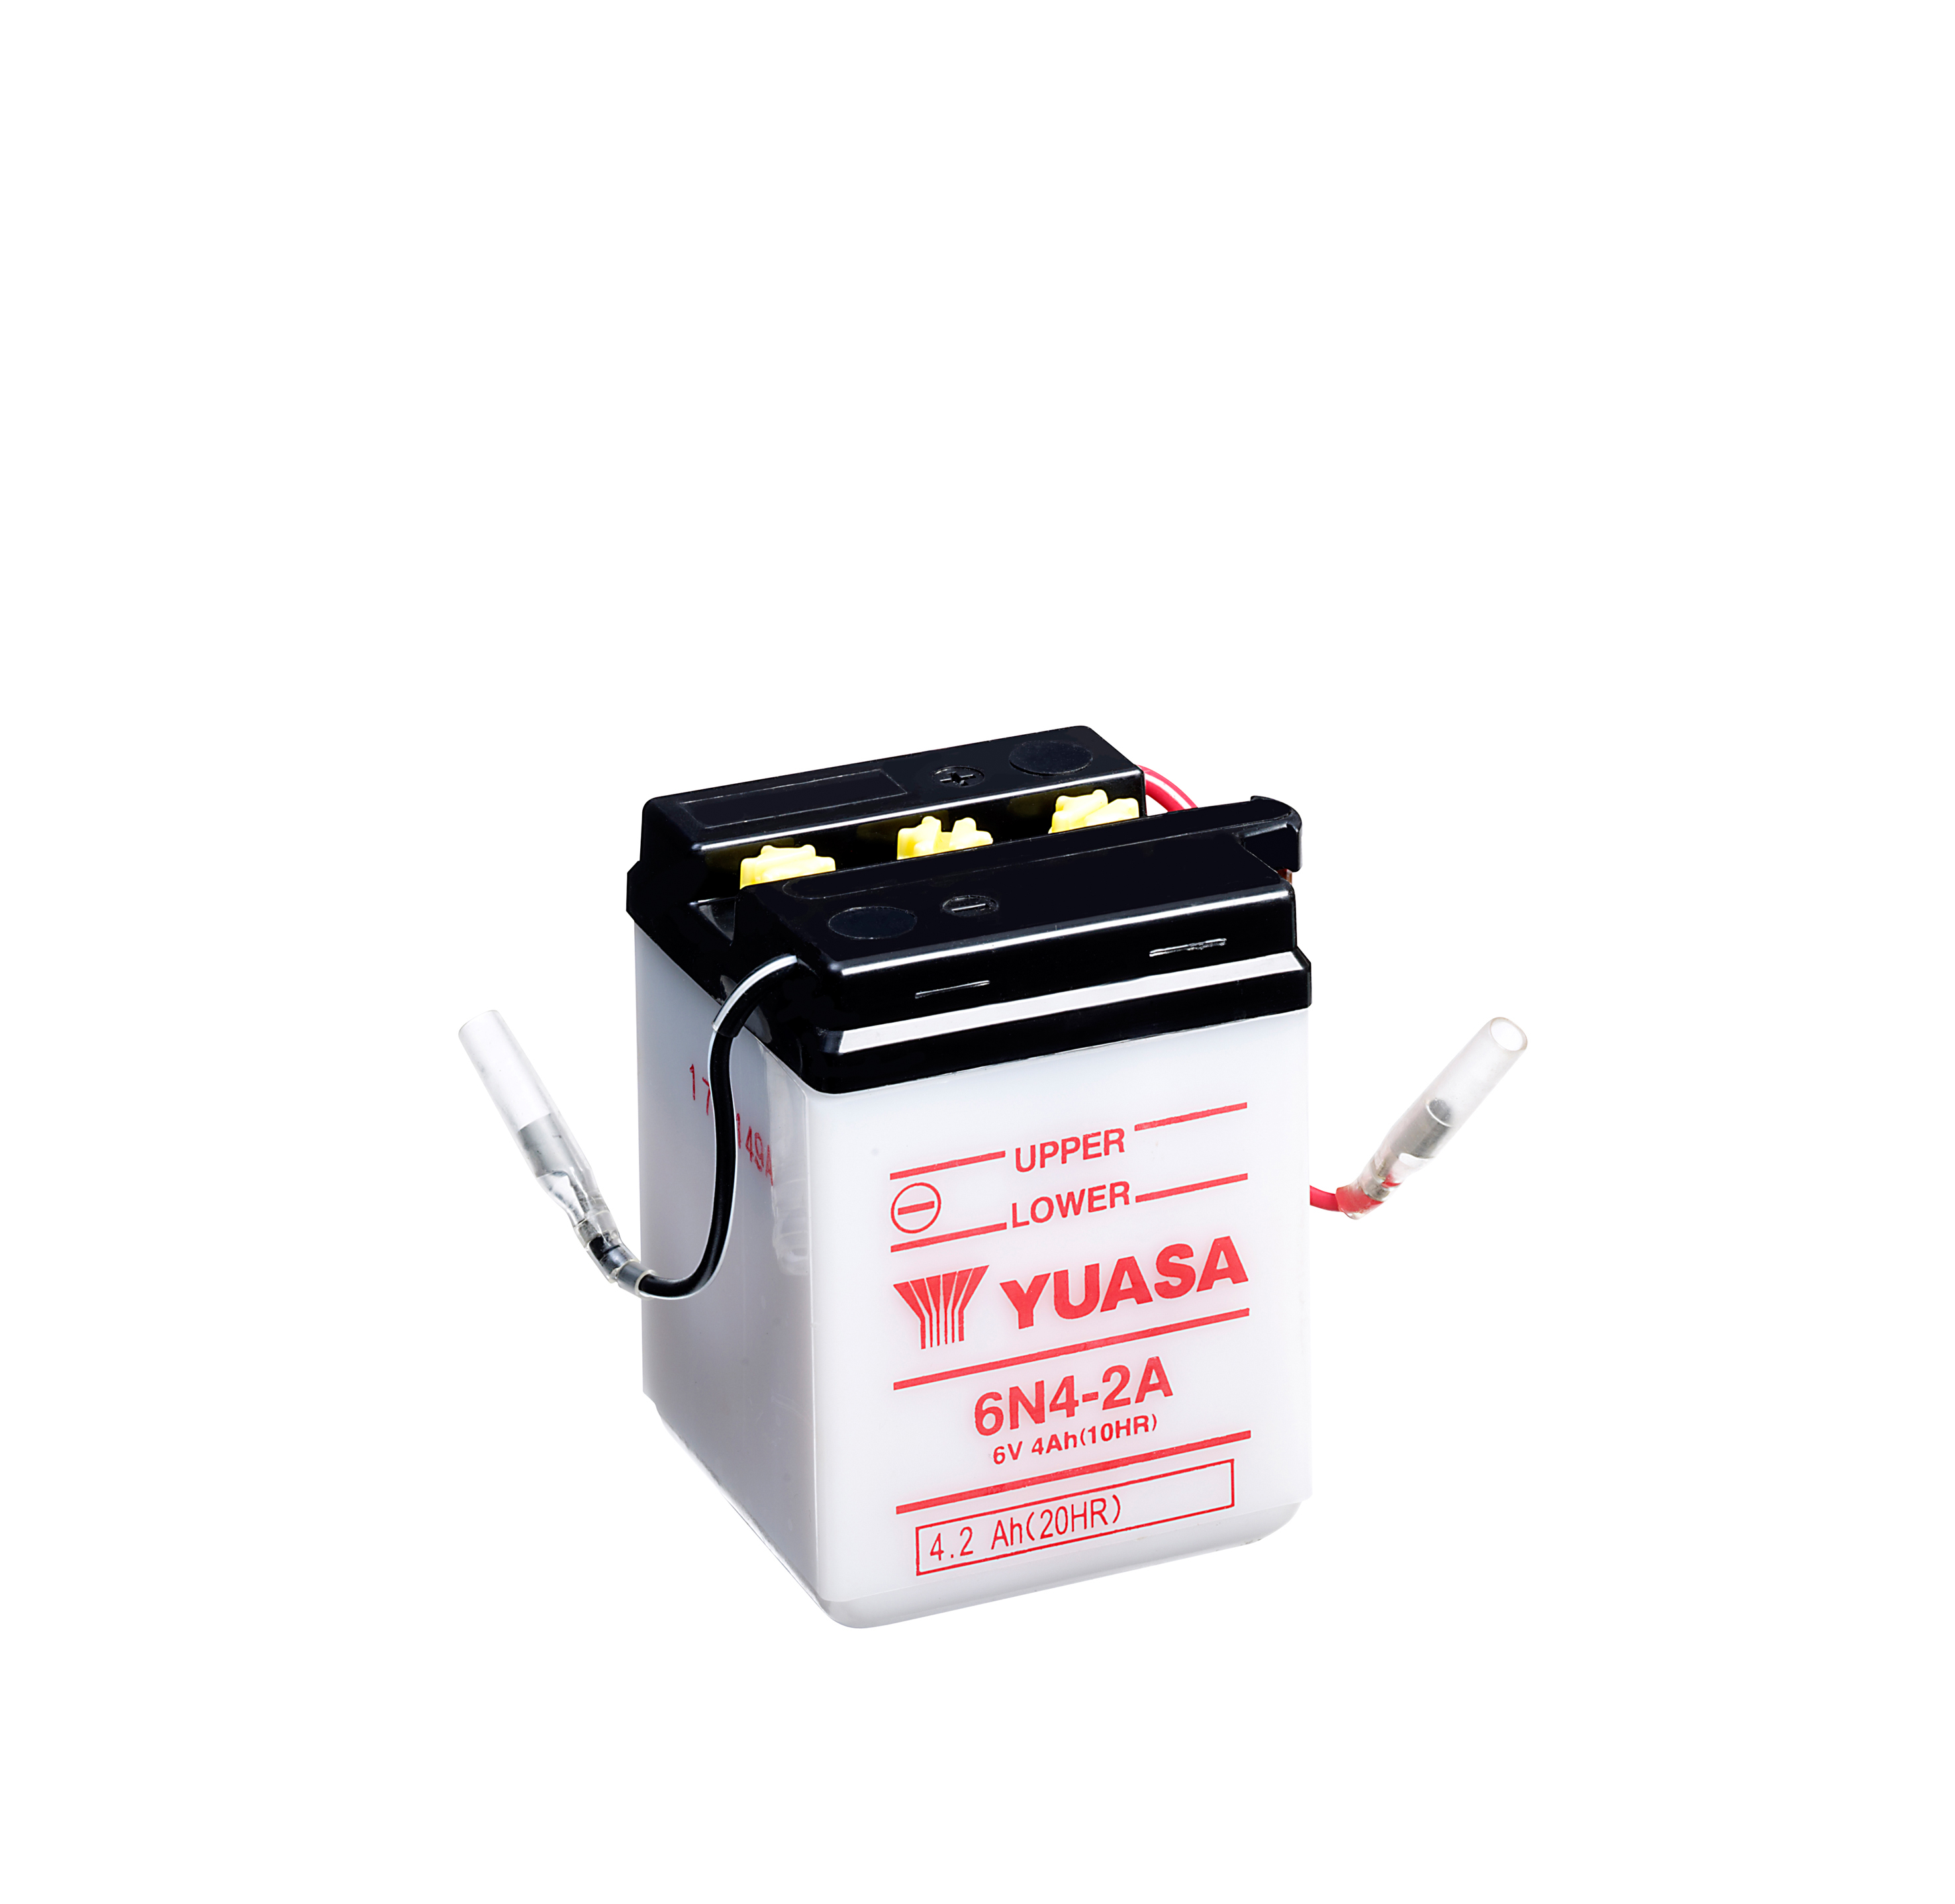 Yuasa Motorcycle Battery 6n4 2a 6v 4ah From County Battery